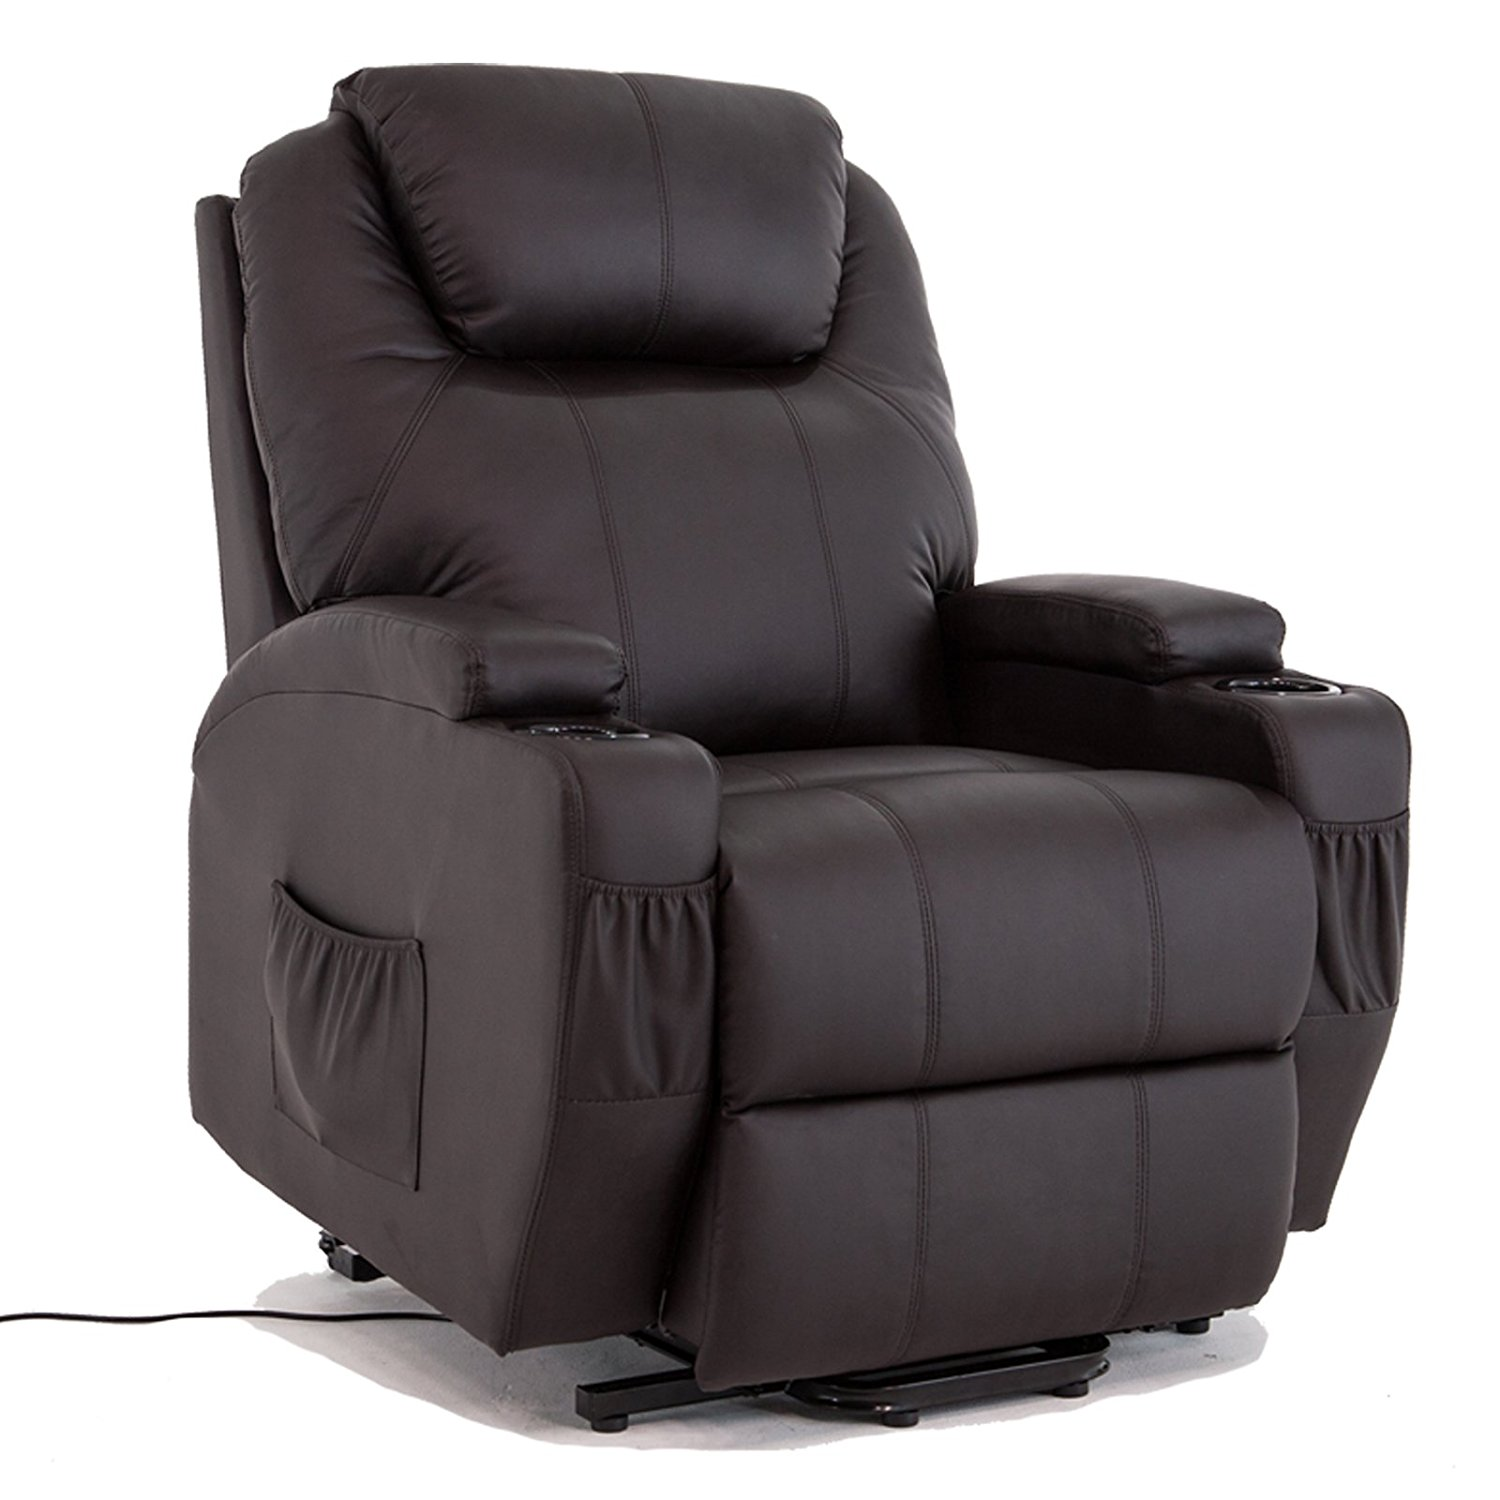 Uenjoy Power Lift Chair Recliner Armchair Real Leather Wall Hugger Lounge Seat ,Brown by Uenjoy